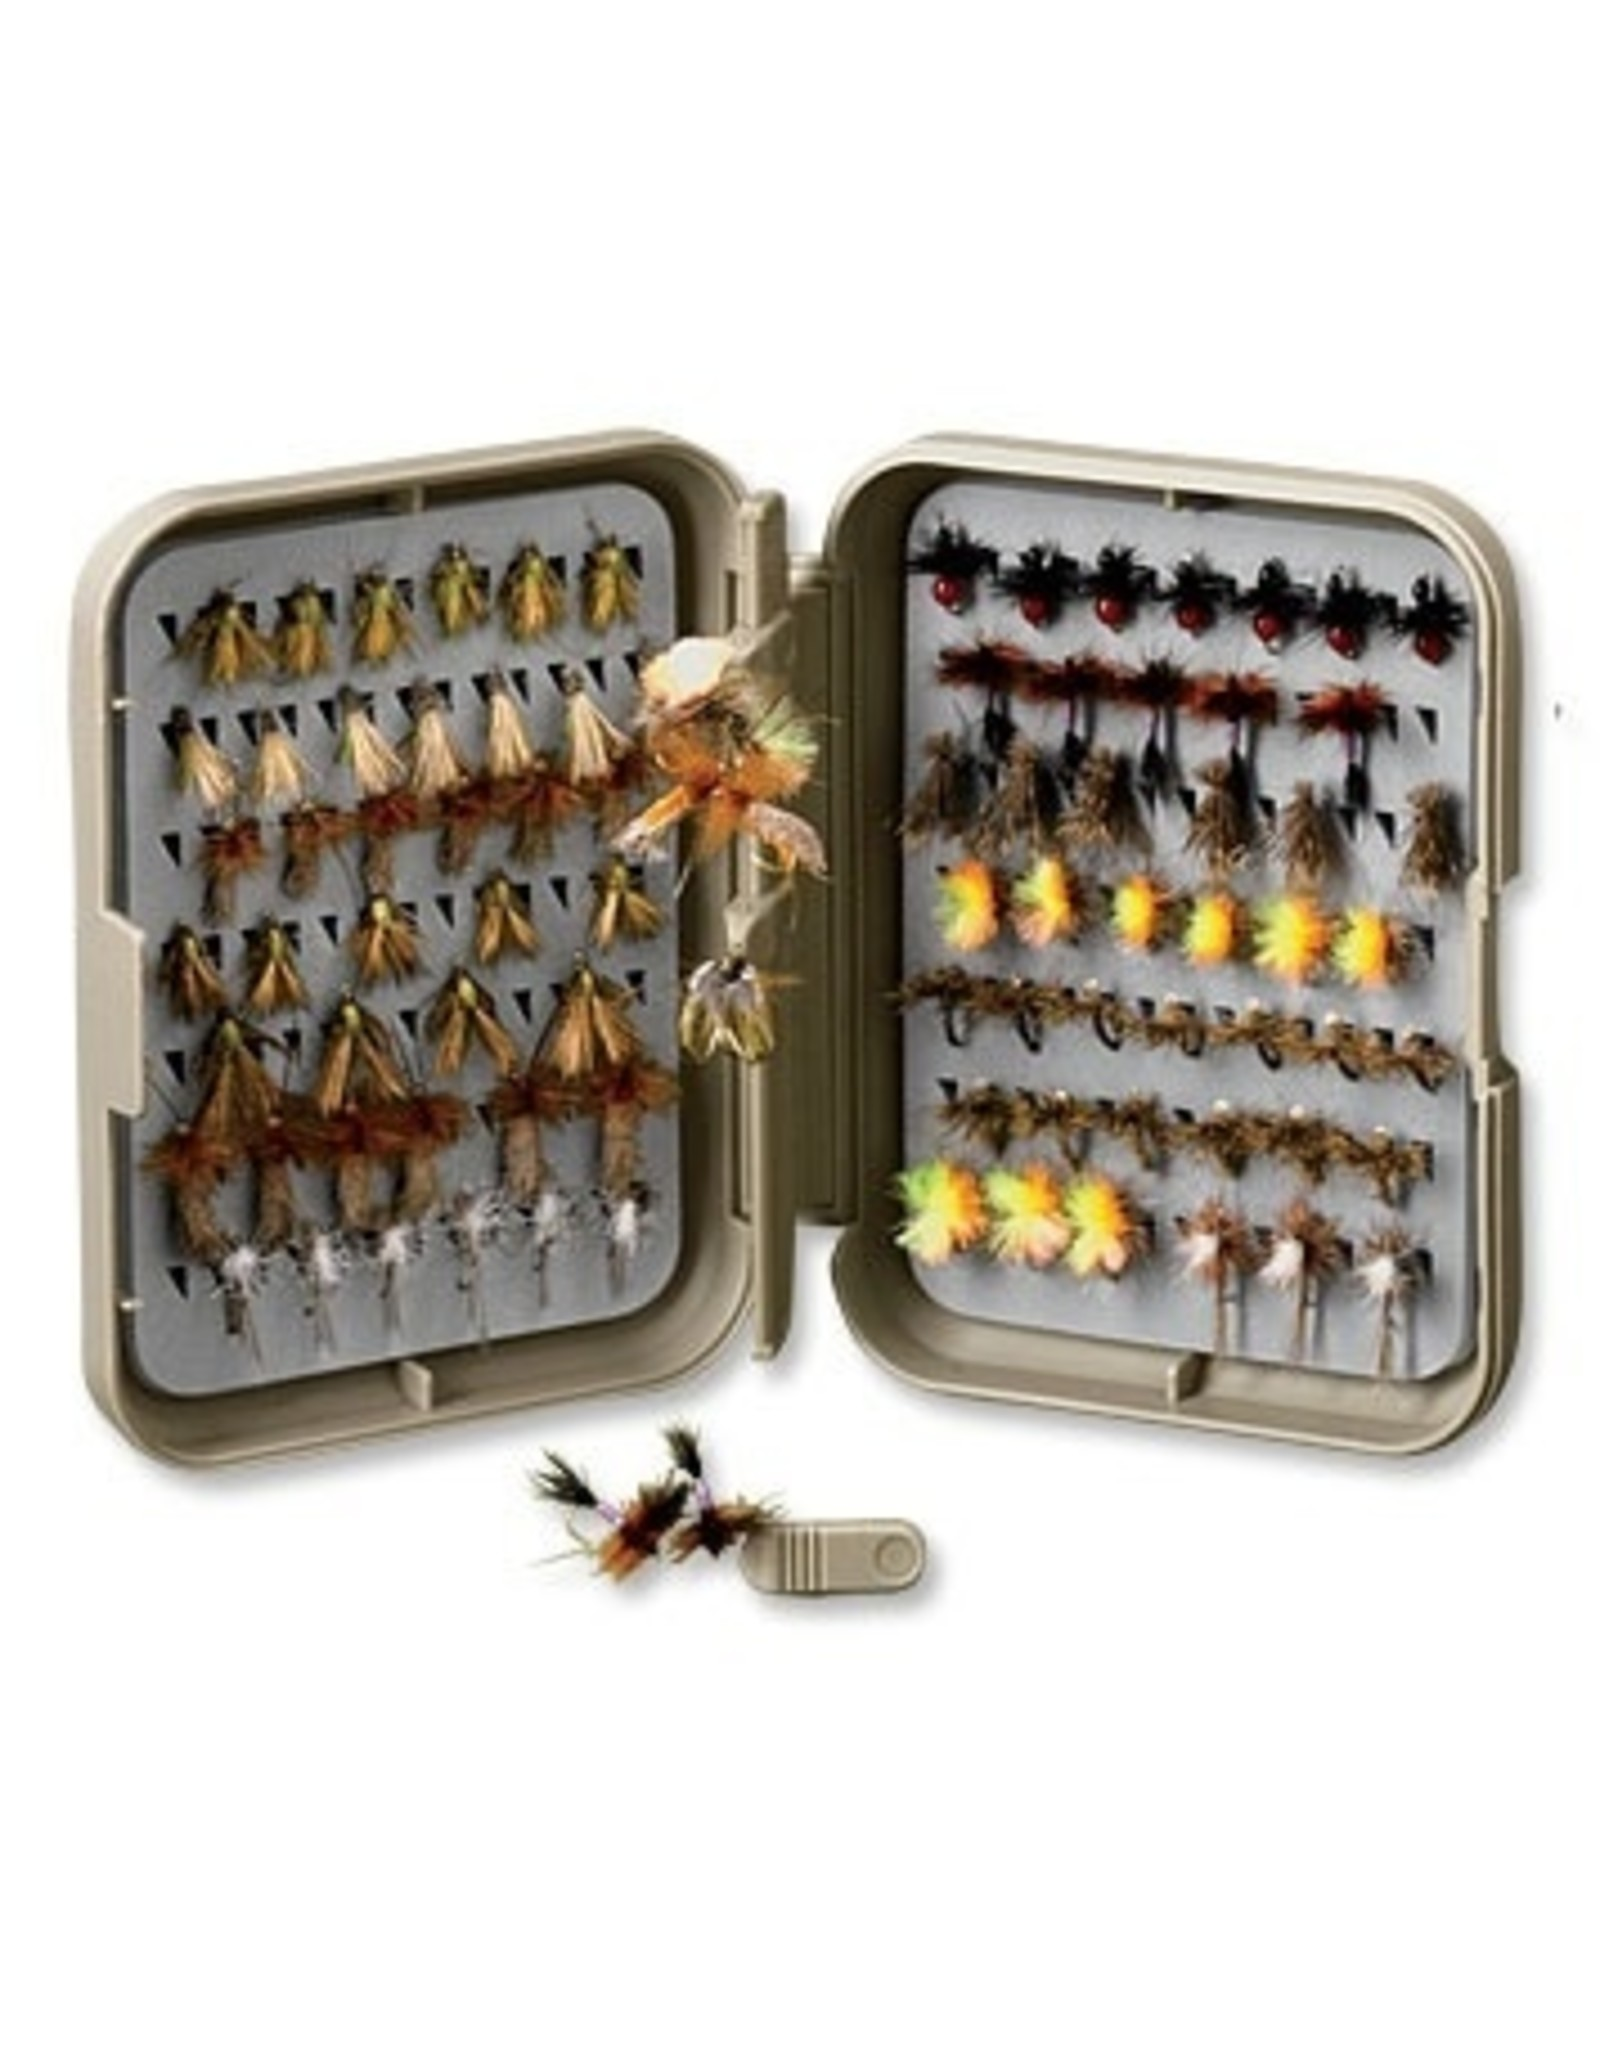 Orvis Orvis Posigrip Threader Fly Box Medium